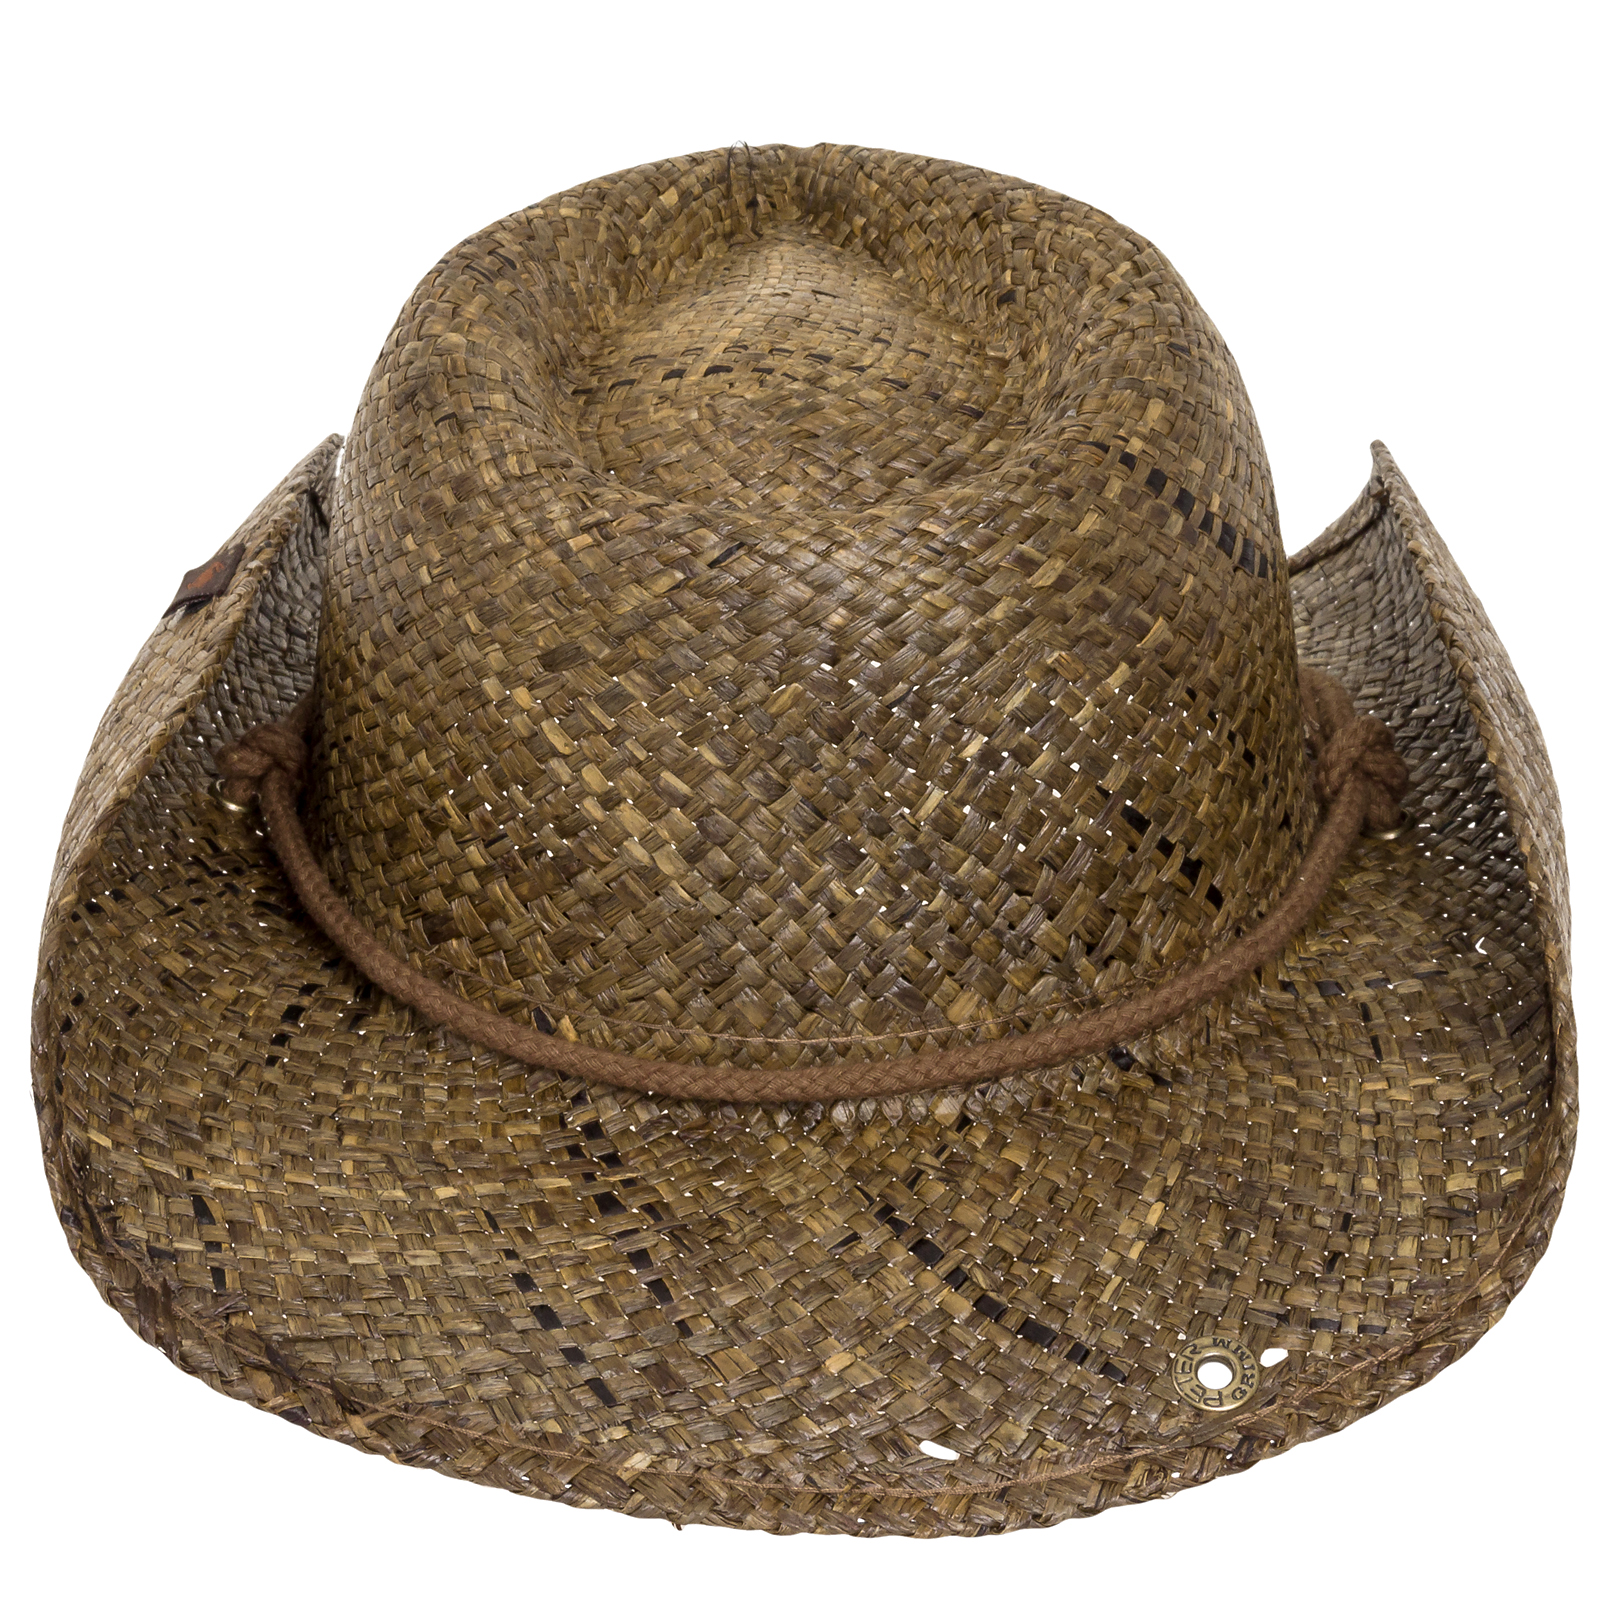 9eba244b61cc91 Peter Grimm Straw Round Up Authentic Cowboy Hat w/ Moisture Wicking ...